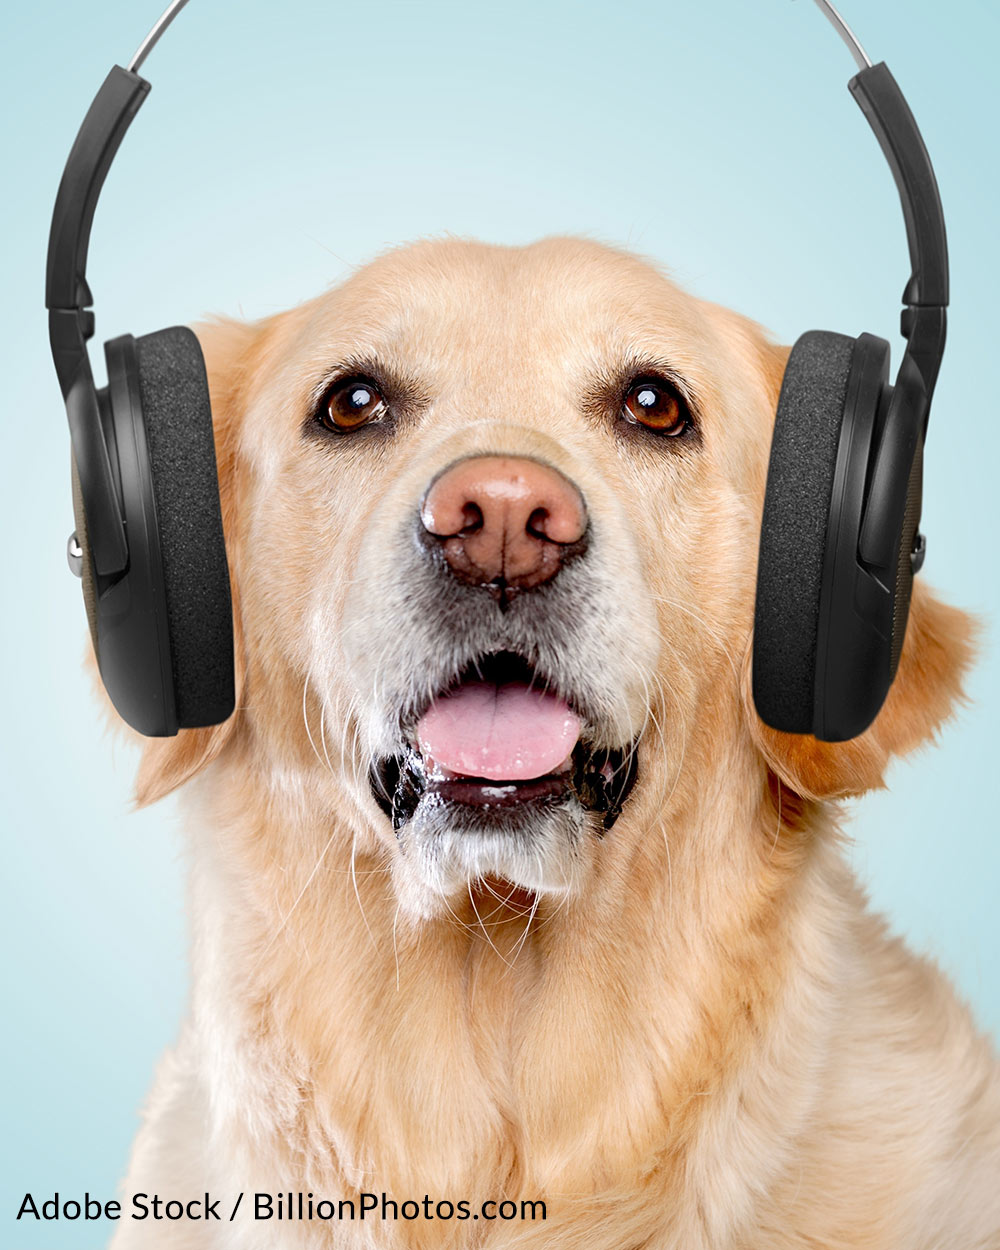 Dogs hear sounds in frequency ranges we don't even recognize as humans.